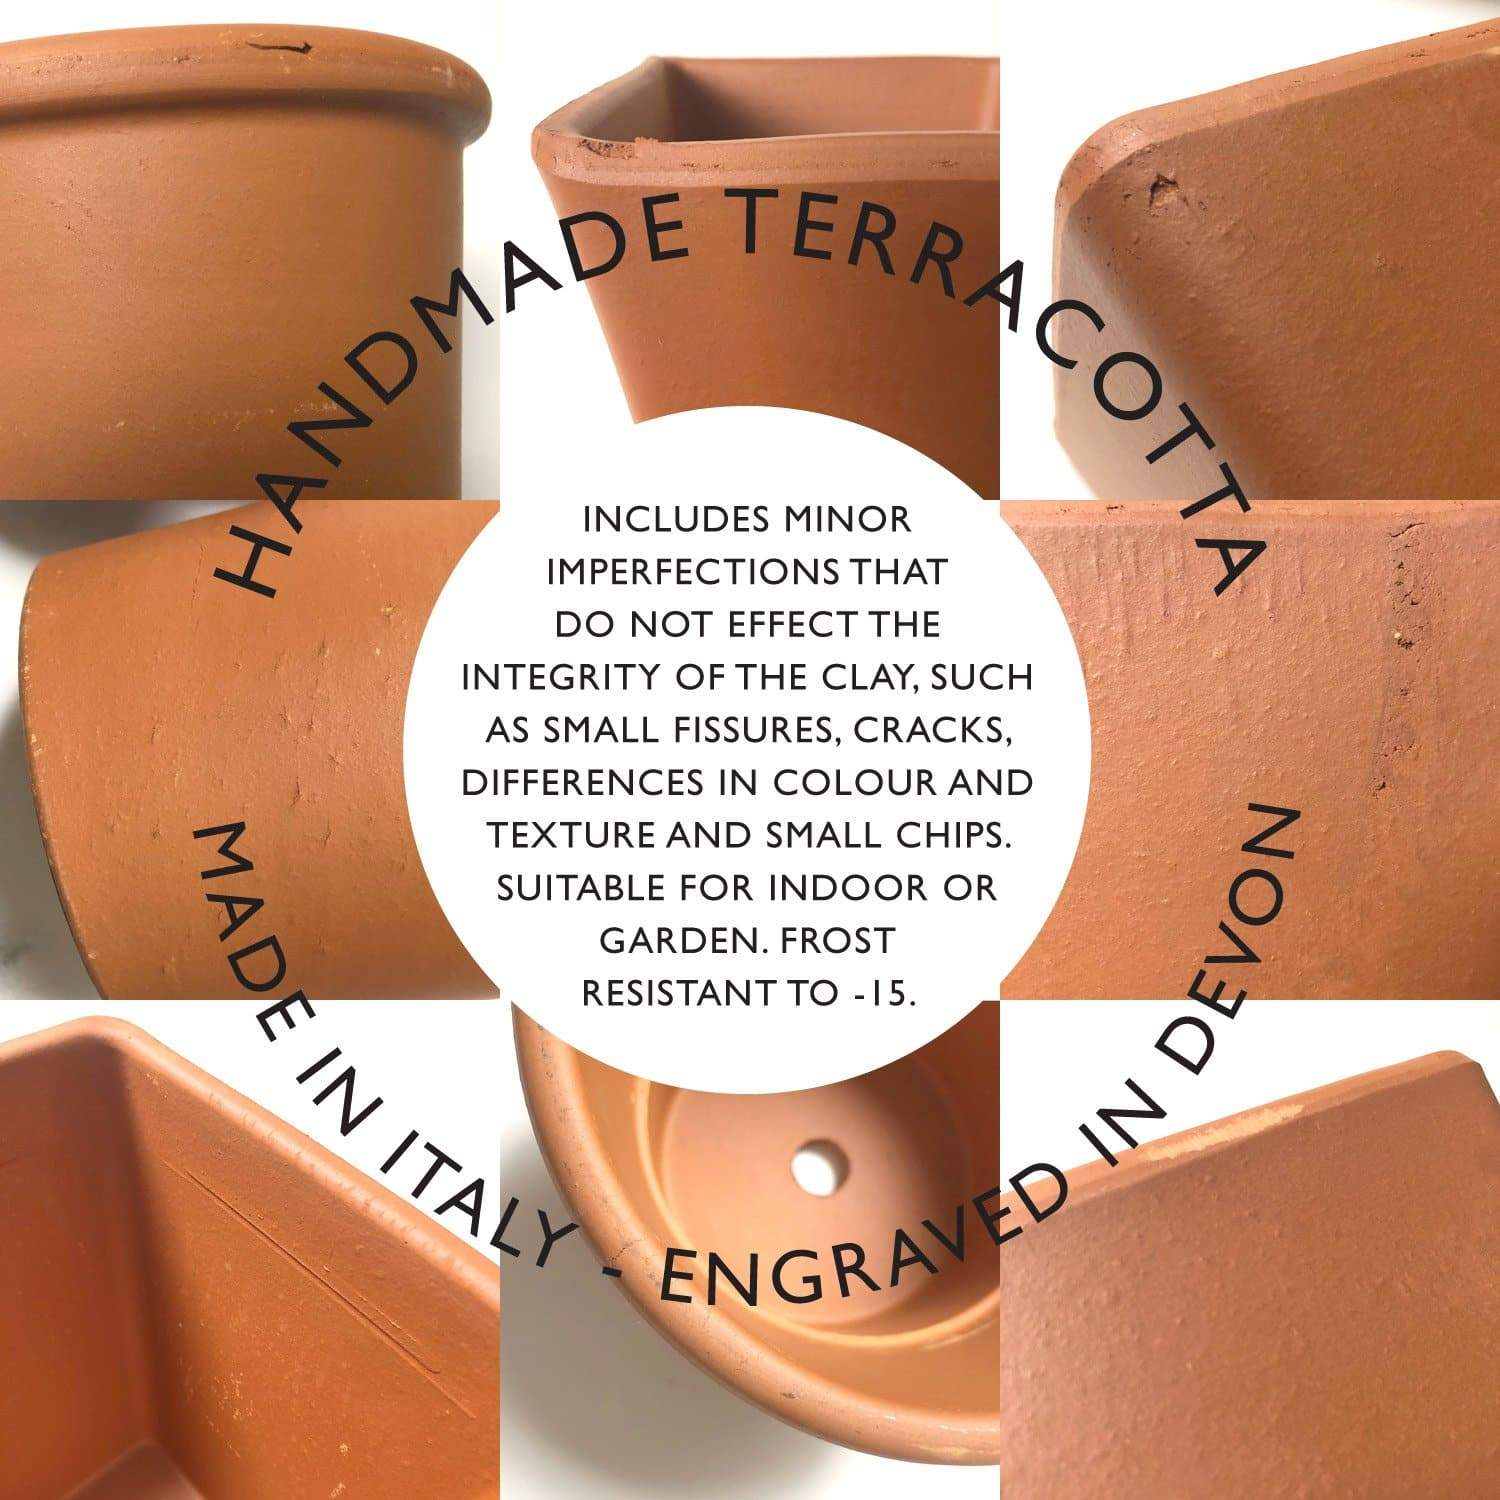 letterfest terracotta Personalised Handwritten Engraved Pot